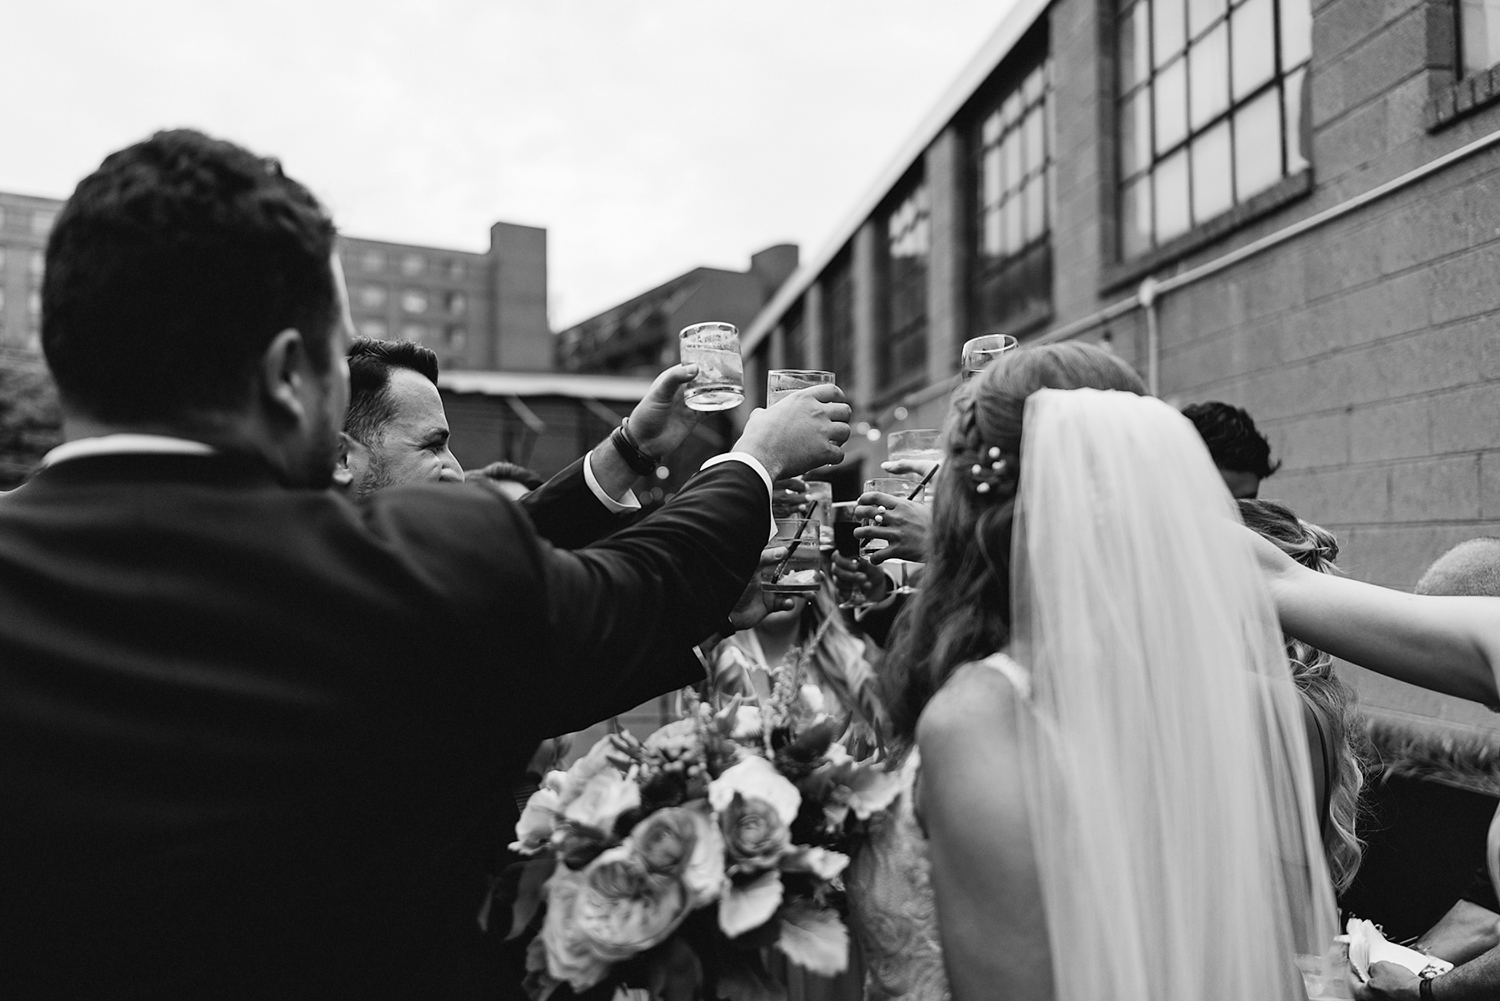 torontos-best-documentary-wedding-photographers-ryanne-hollies-photography-fine-art-photojournalism-artistic-moody-creative-inspiration-downtown-toronto-airship37-venue-modern-hipster-cocktail-hour-bridal-party-cheers-bw.jpg